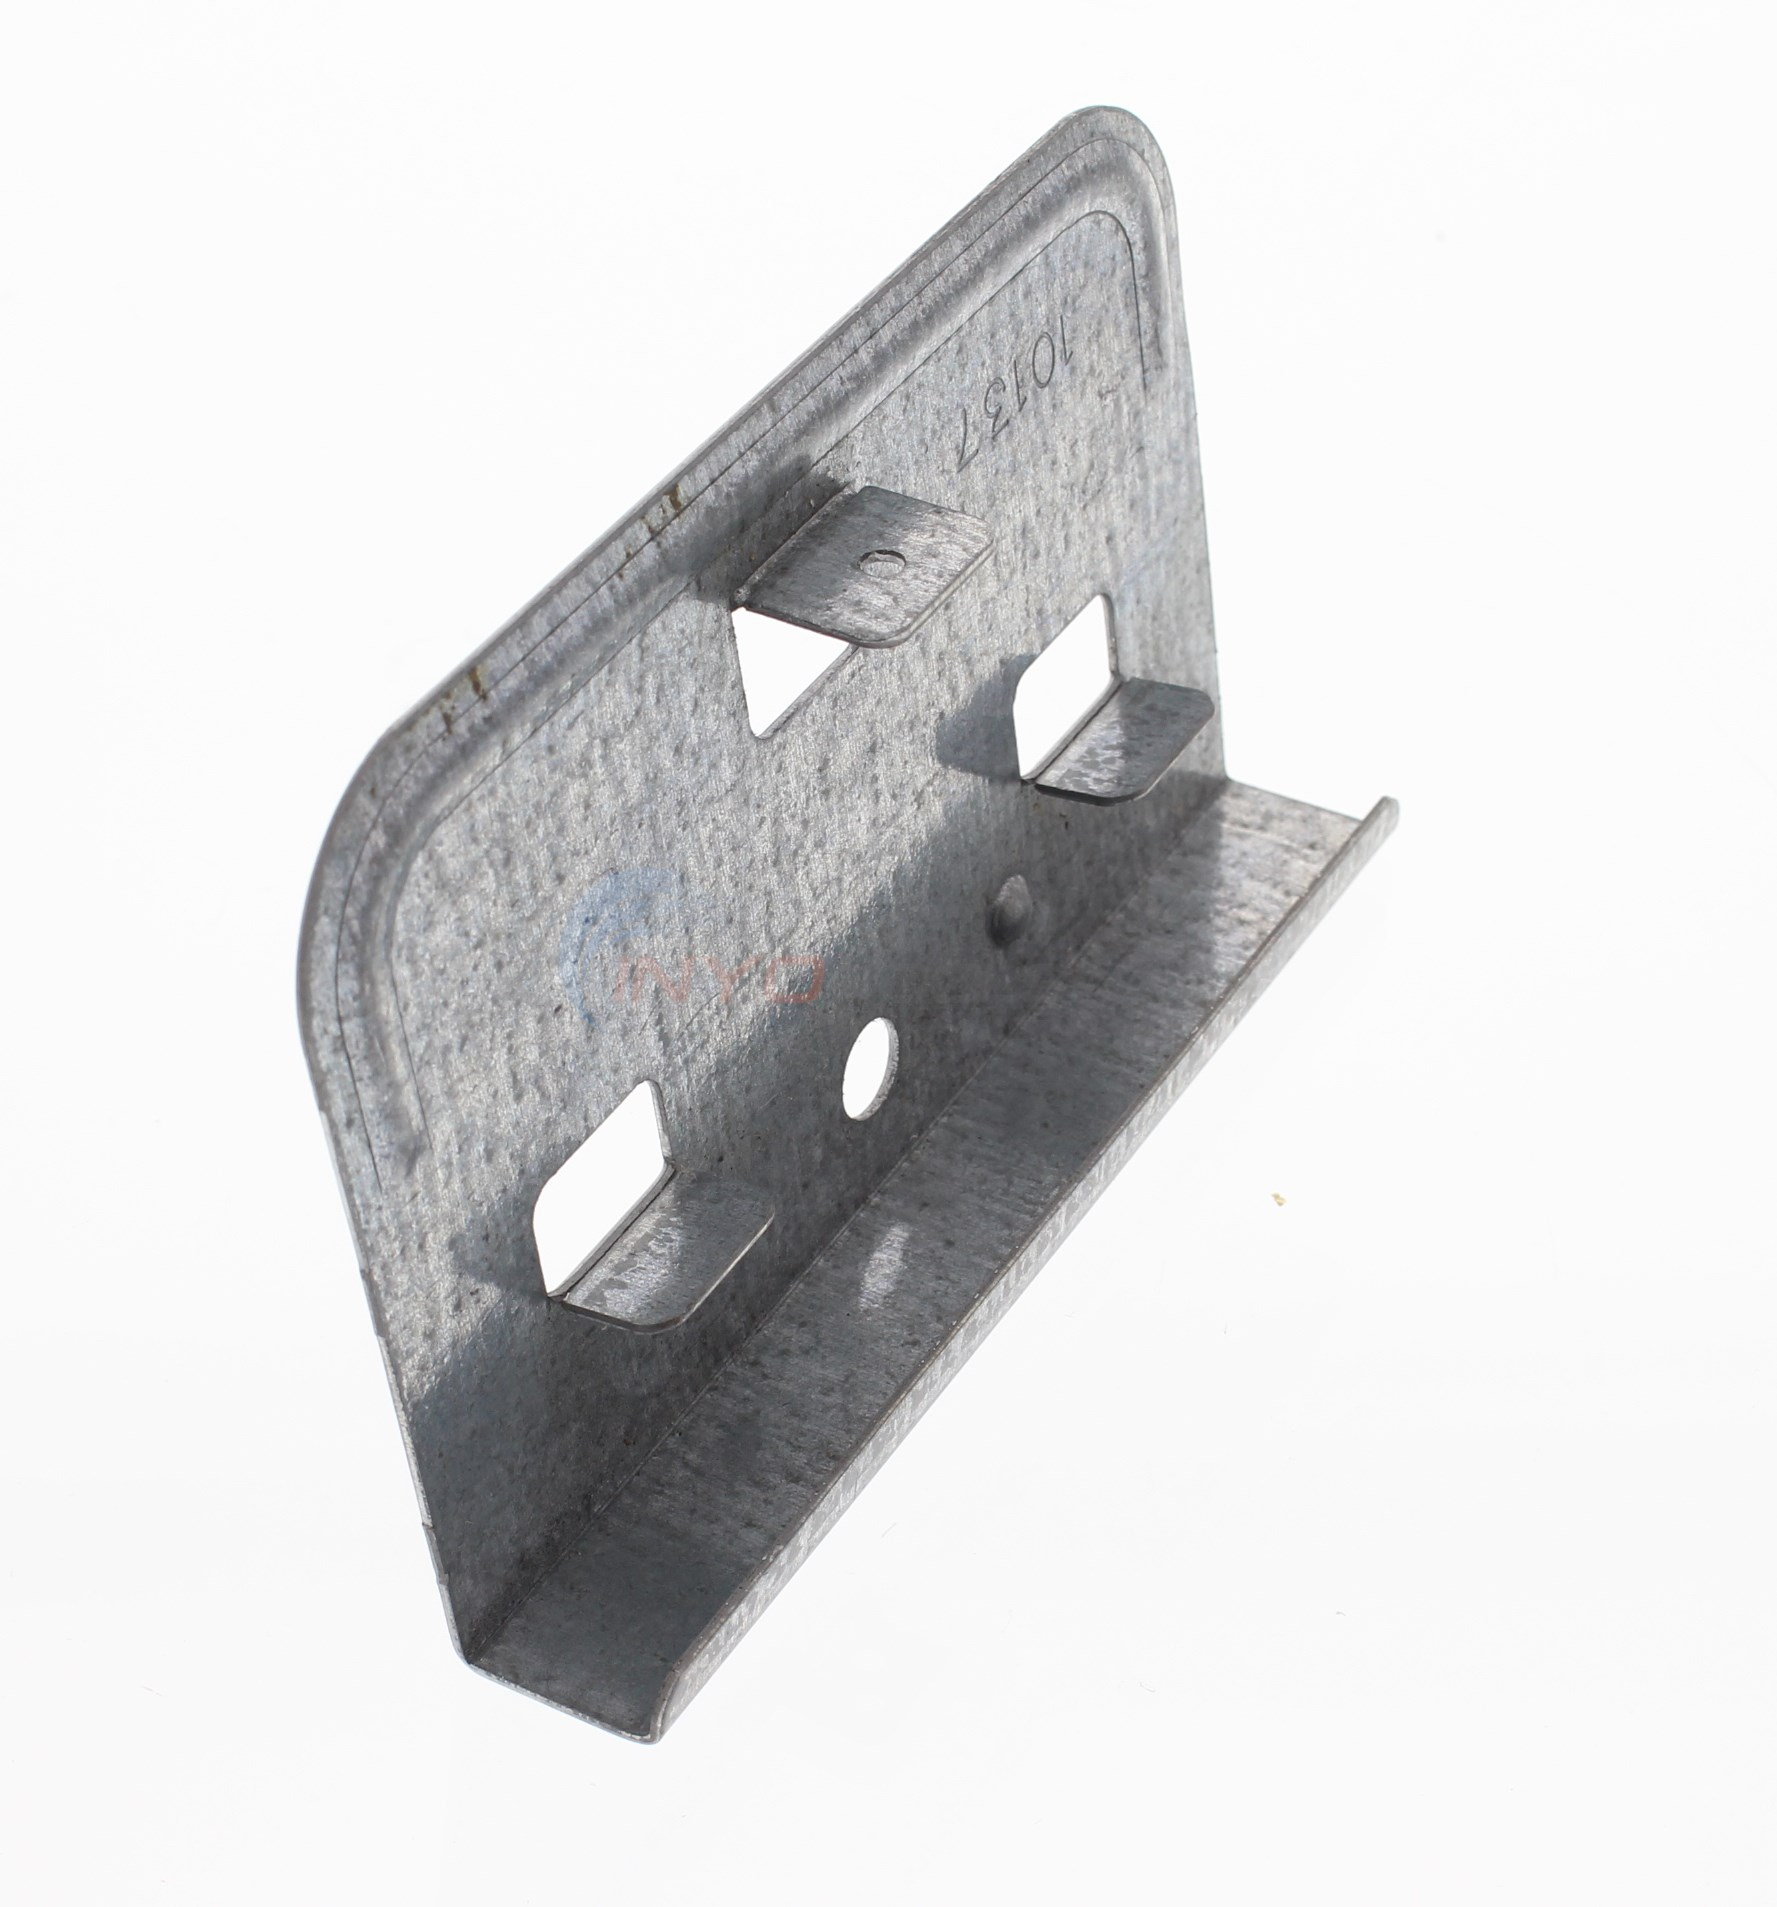 "Wilbar BOTTOM PLATE 4"" STEEL(BAYC/PON) (Single) Out of Stock for 2019 - 10137"